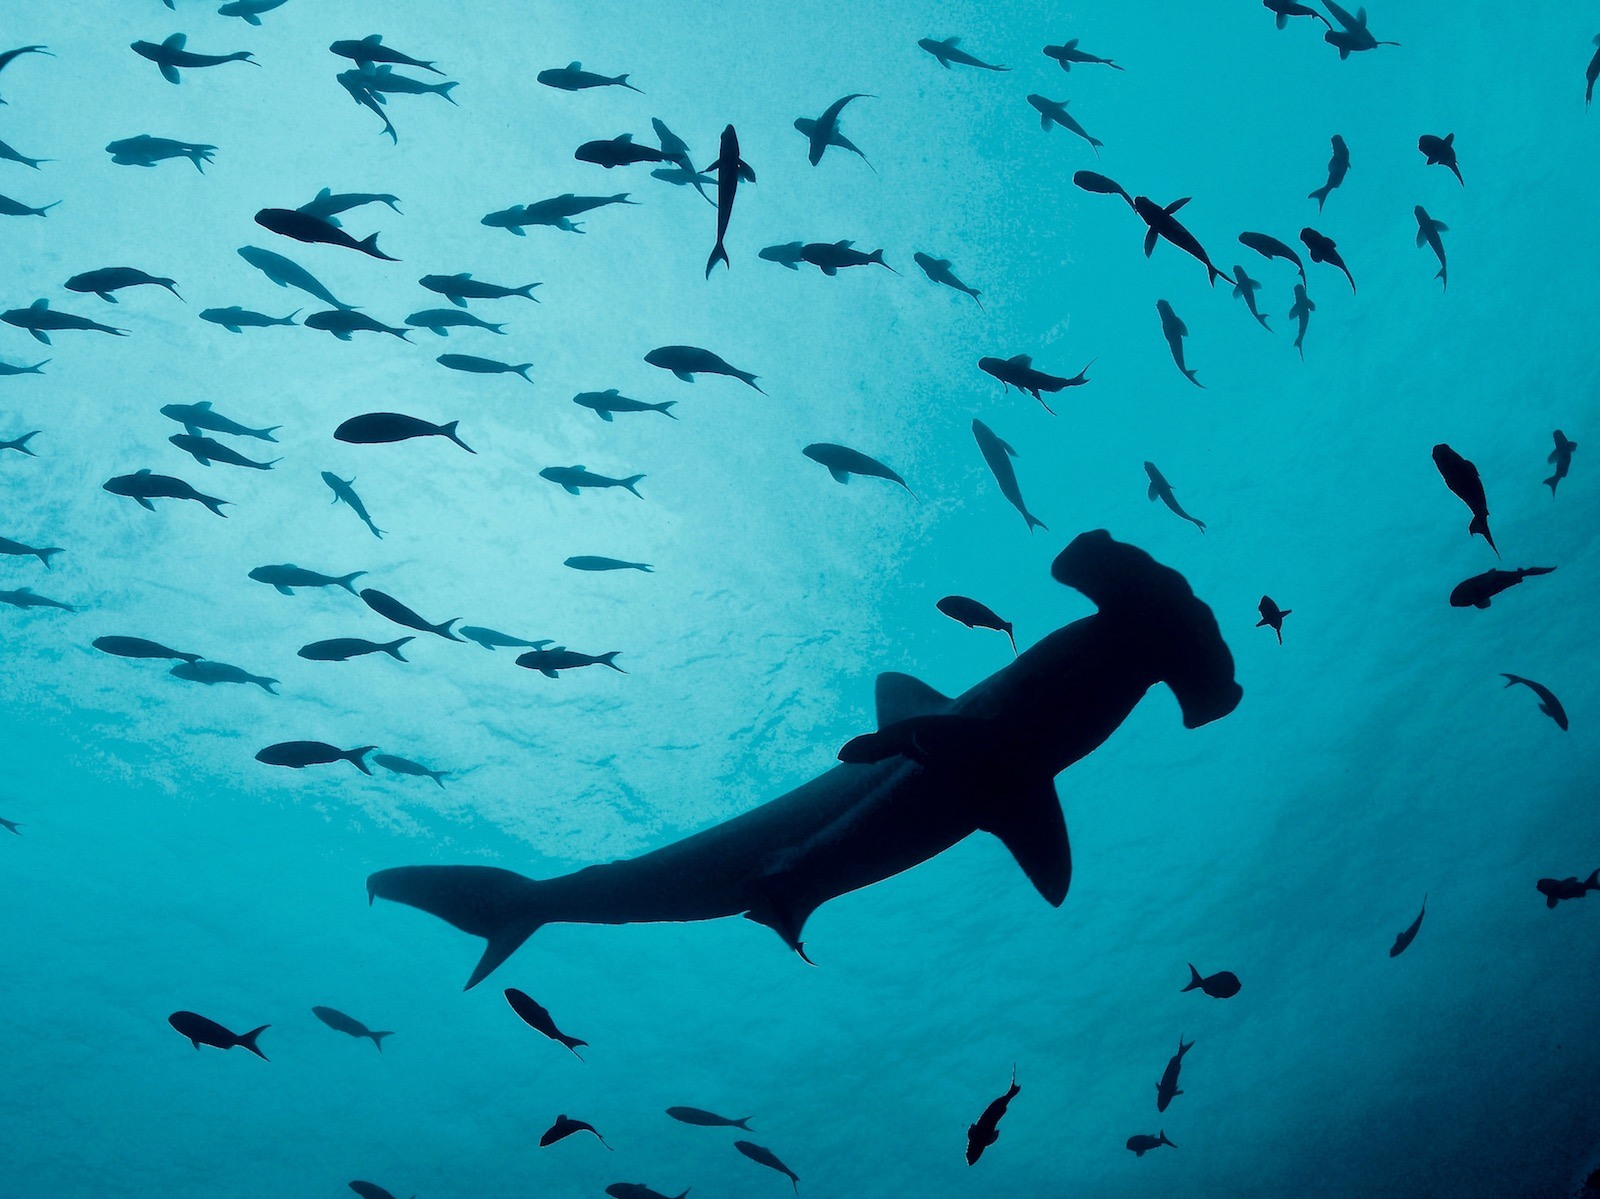 Galapagos Hammerhead Photo By Kristin Hettermann